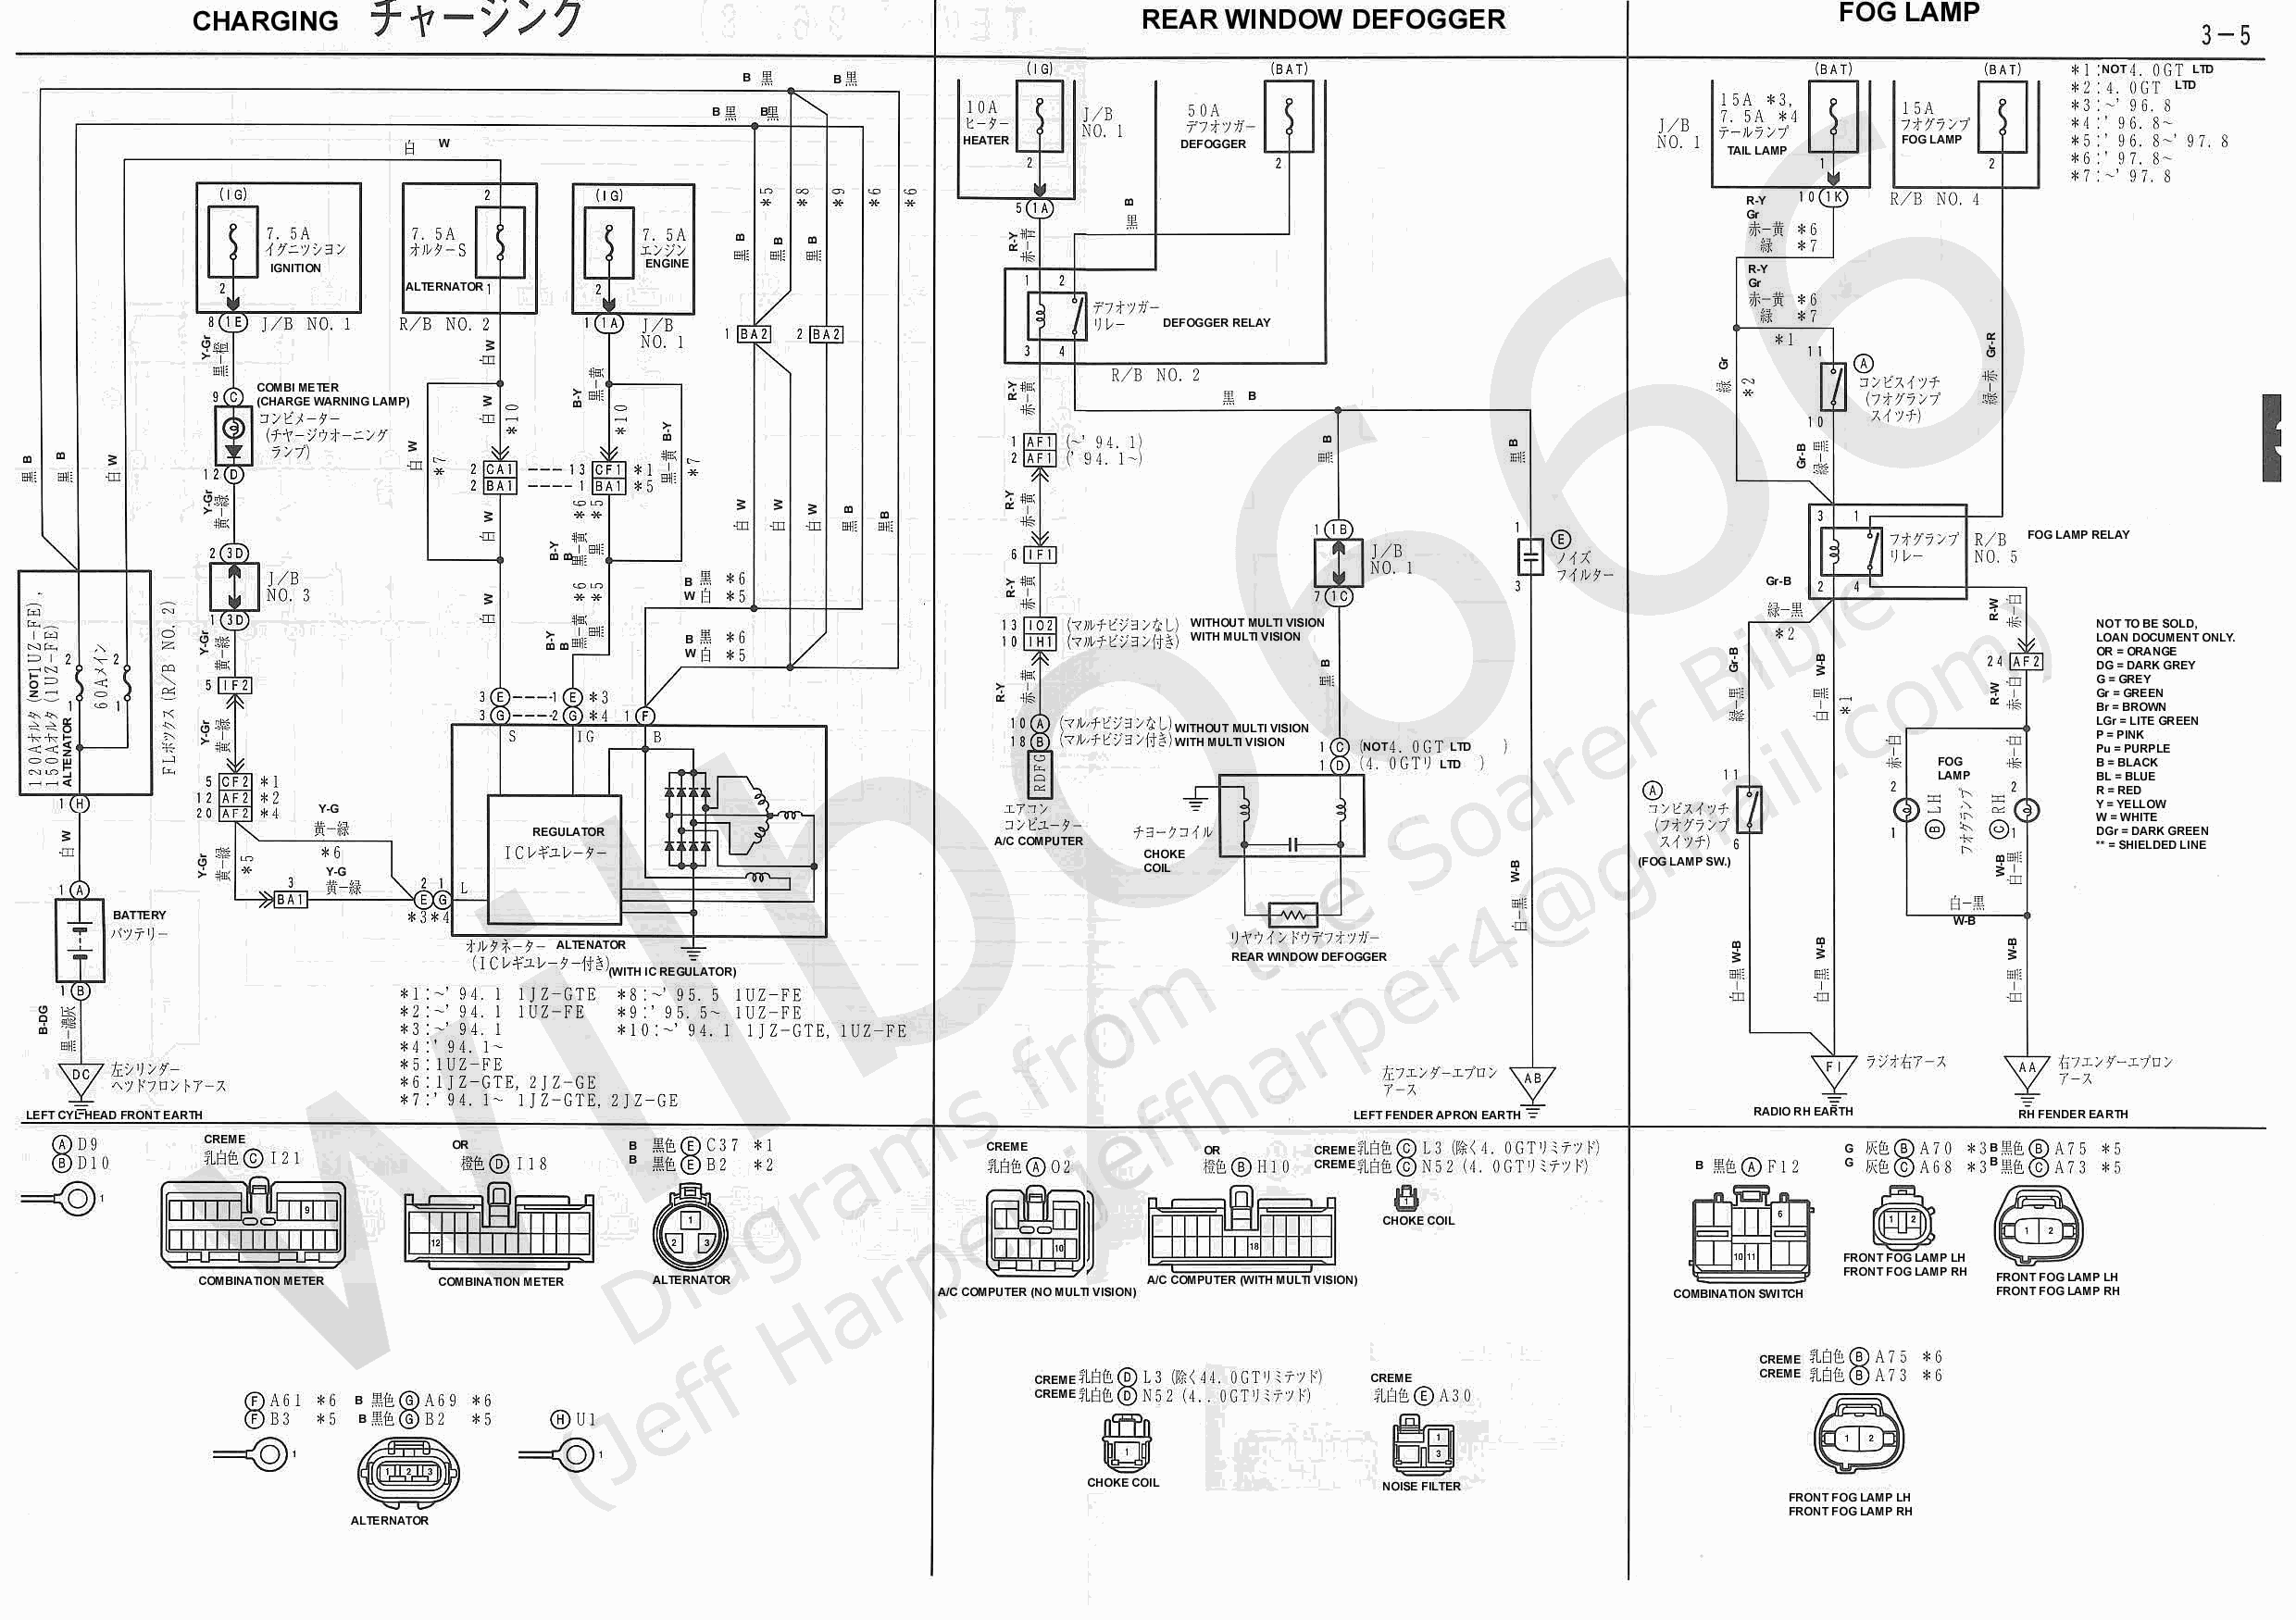 xZZ3x Electrical Wiring Diagram 6737105 3 5?resize\\\\\\\\\\\\\\\\\\\\\\\\\\\\\\\\\\\\\\\\\\\\\\\\\\\\\\\\\\\\\\\\\\\\\\\\\\\\\\\\\\\\\\\\\\\\\\\=665%2C469 3sge beams wiring diagram race lexus is200 beams \u2022 wiring diagrams ae86 wiring harness at mifinder.co